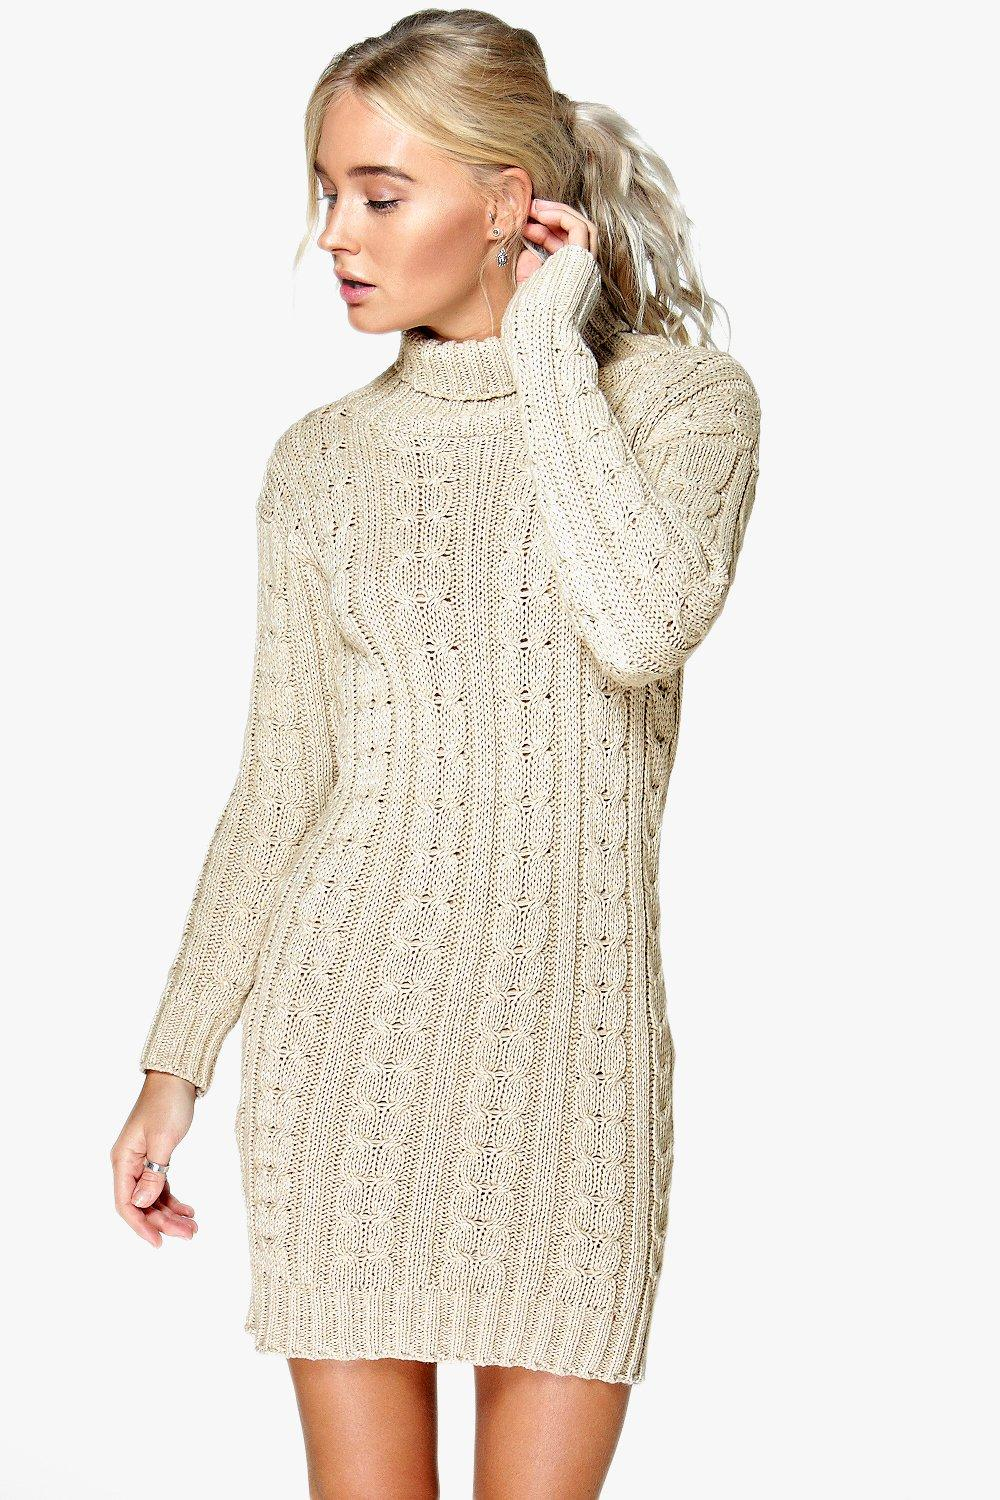 Pair a tunic sweater with boyfriend jeans or harem pants for a casual daytime look or with your favorite shoes to dress it up. A cropped sweater is great to pair with high waisted jeans or skirts. The perfect sweater is waiting for you in the collection above.